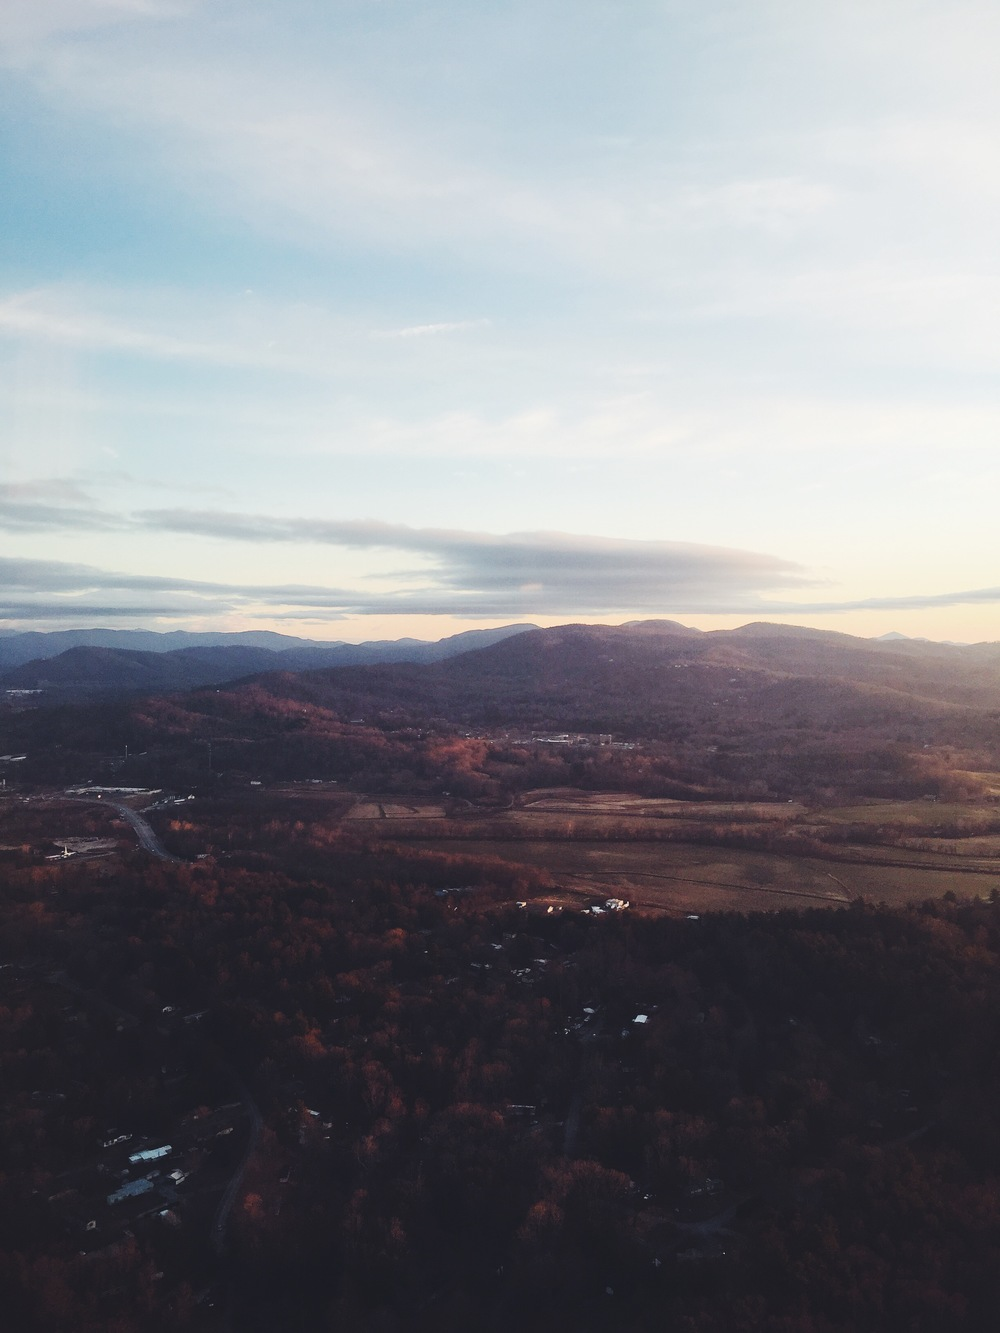 Our view flying into Asheville, North Carolina